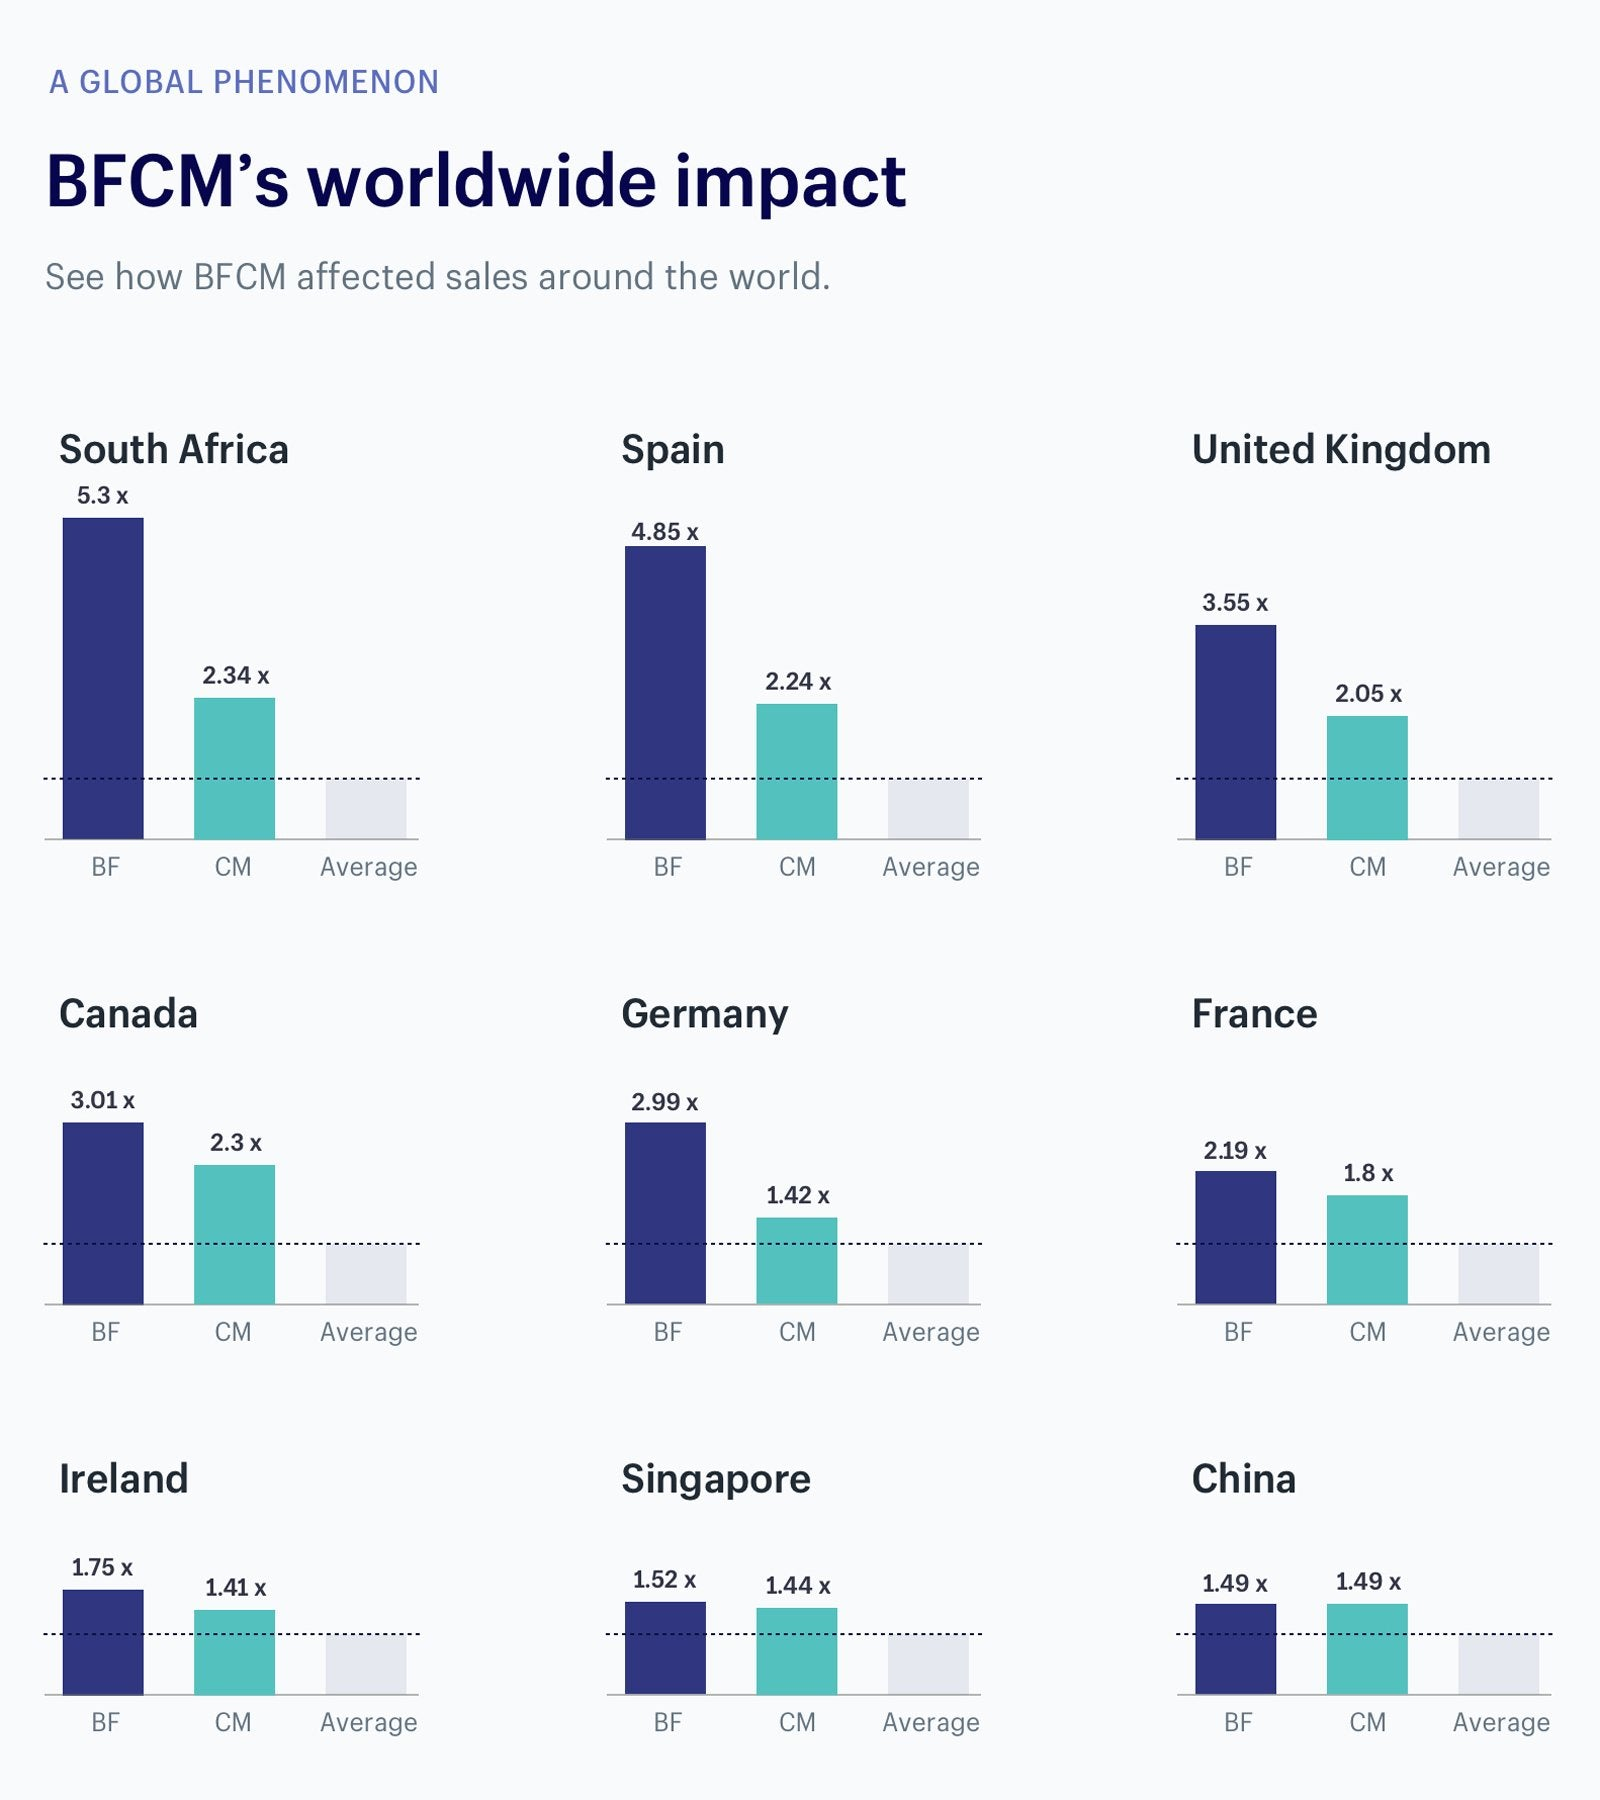 The impact of BFCM on sales around the world